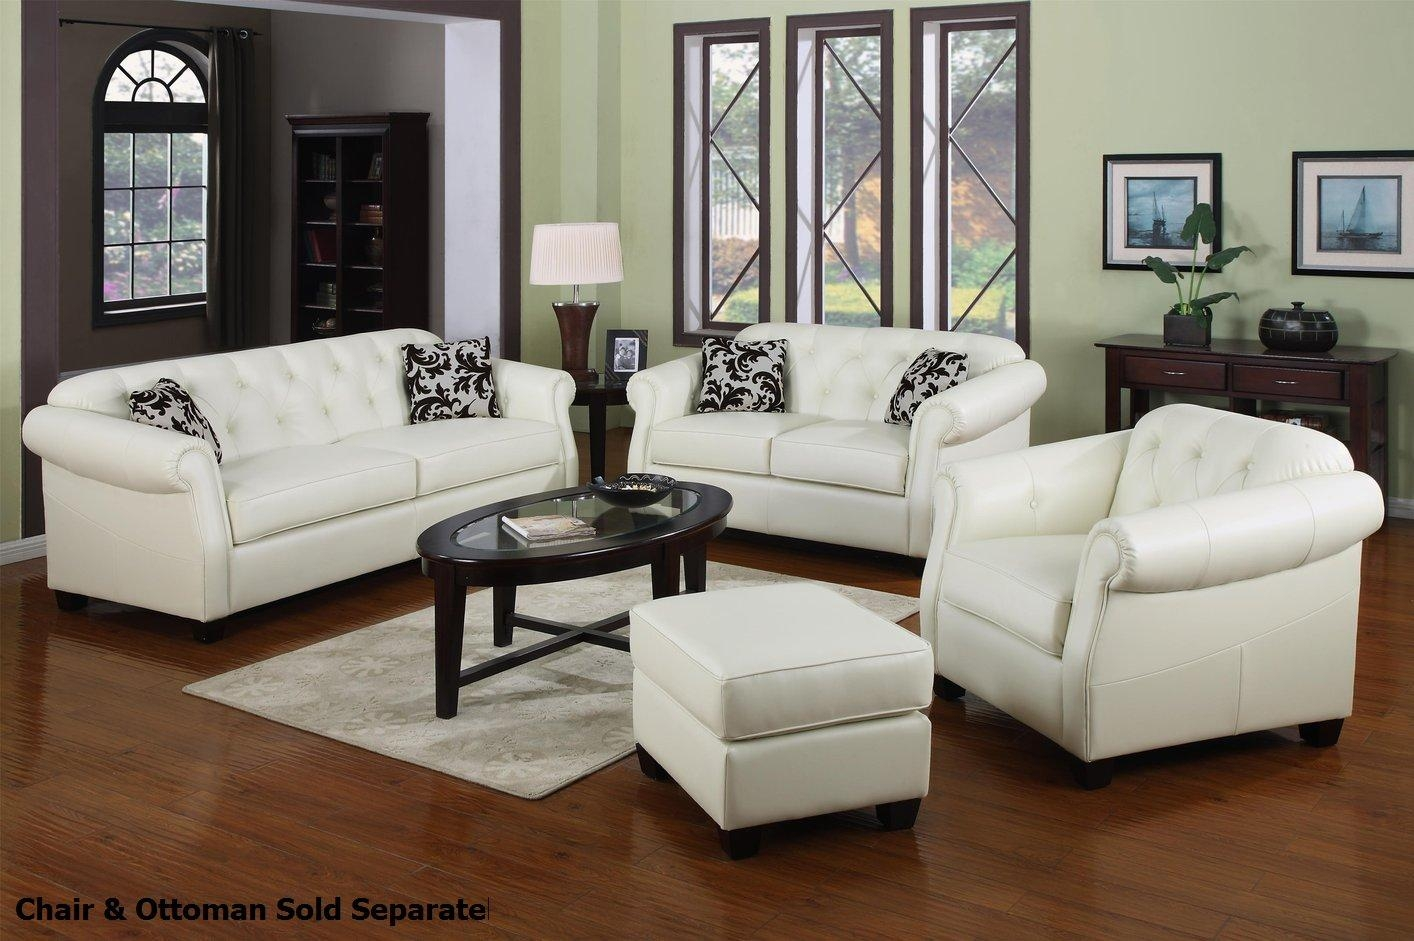 Benchcraft Leather Rustic Sofas Also White Leather Recliner Sofa With Benchcraft Leather Sofas (Image 5 of 20)